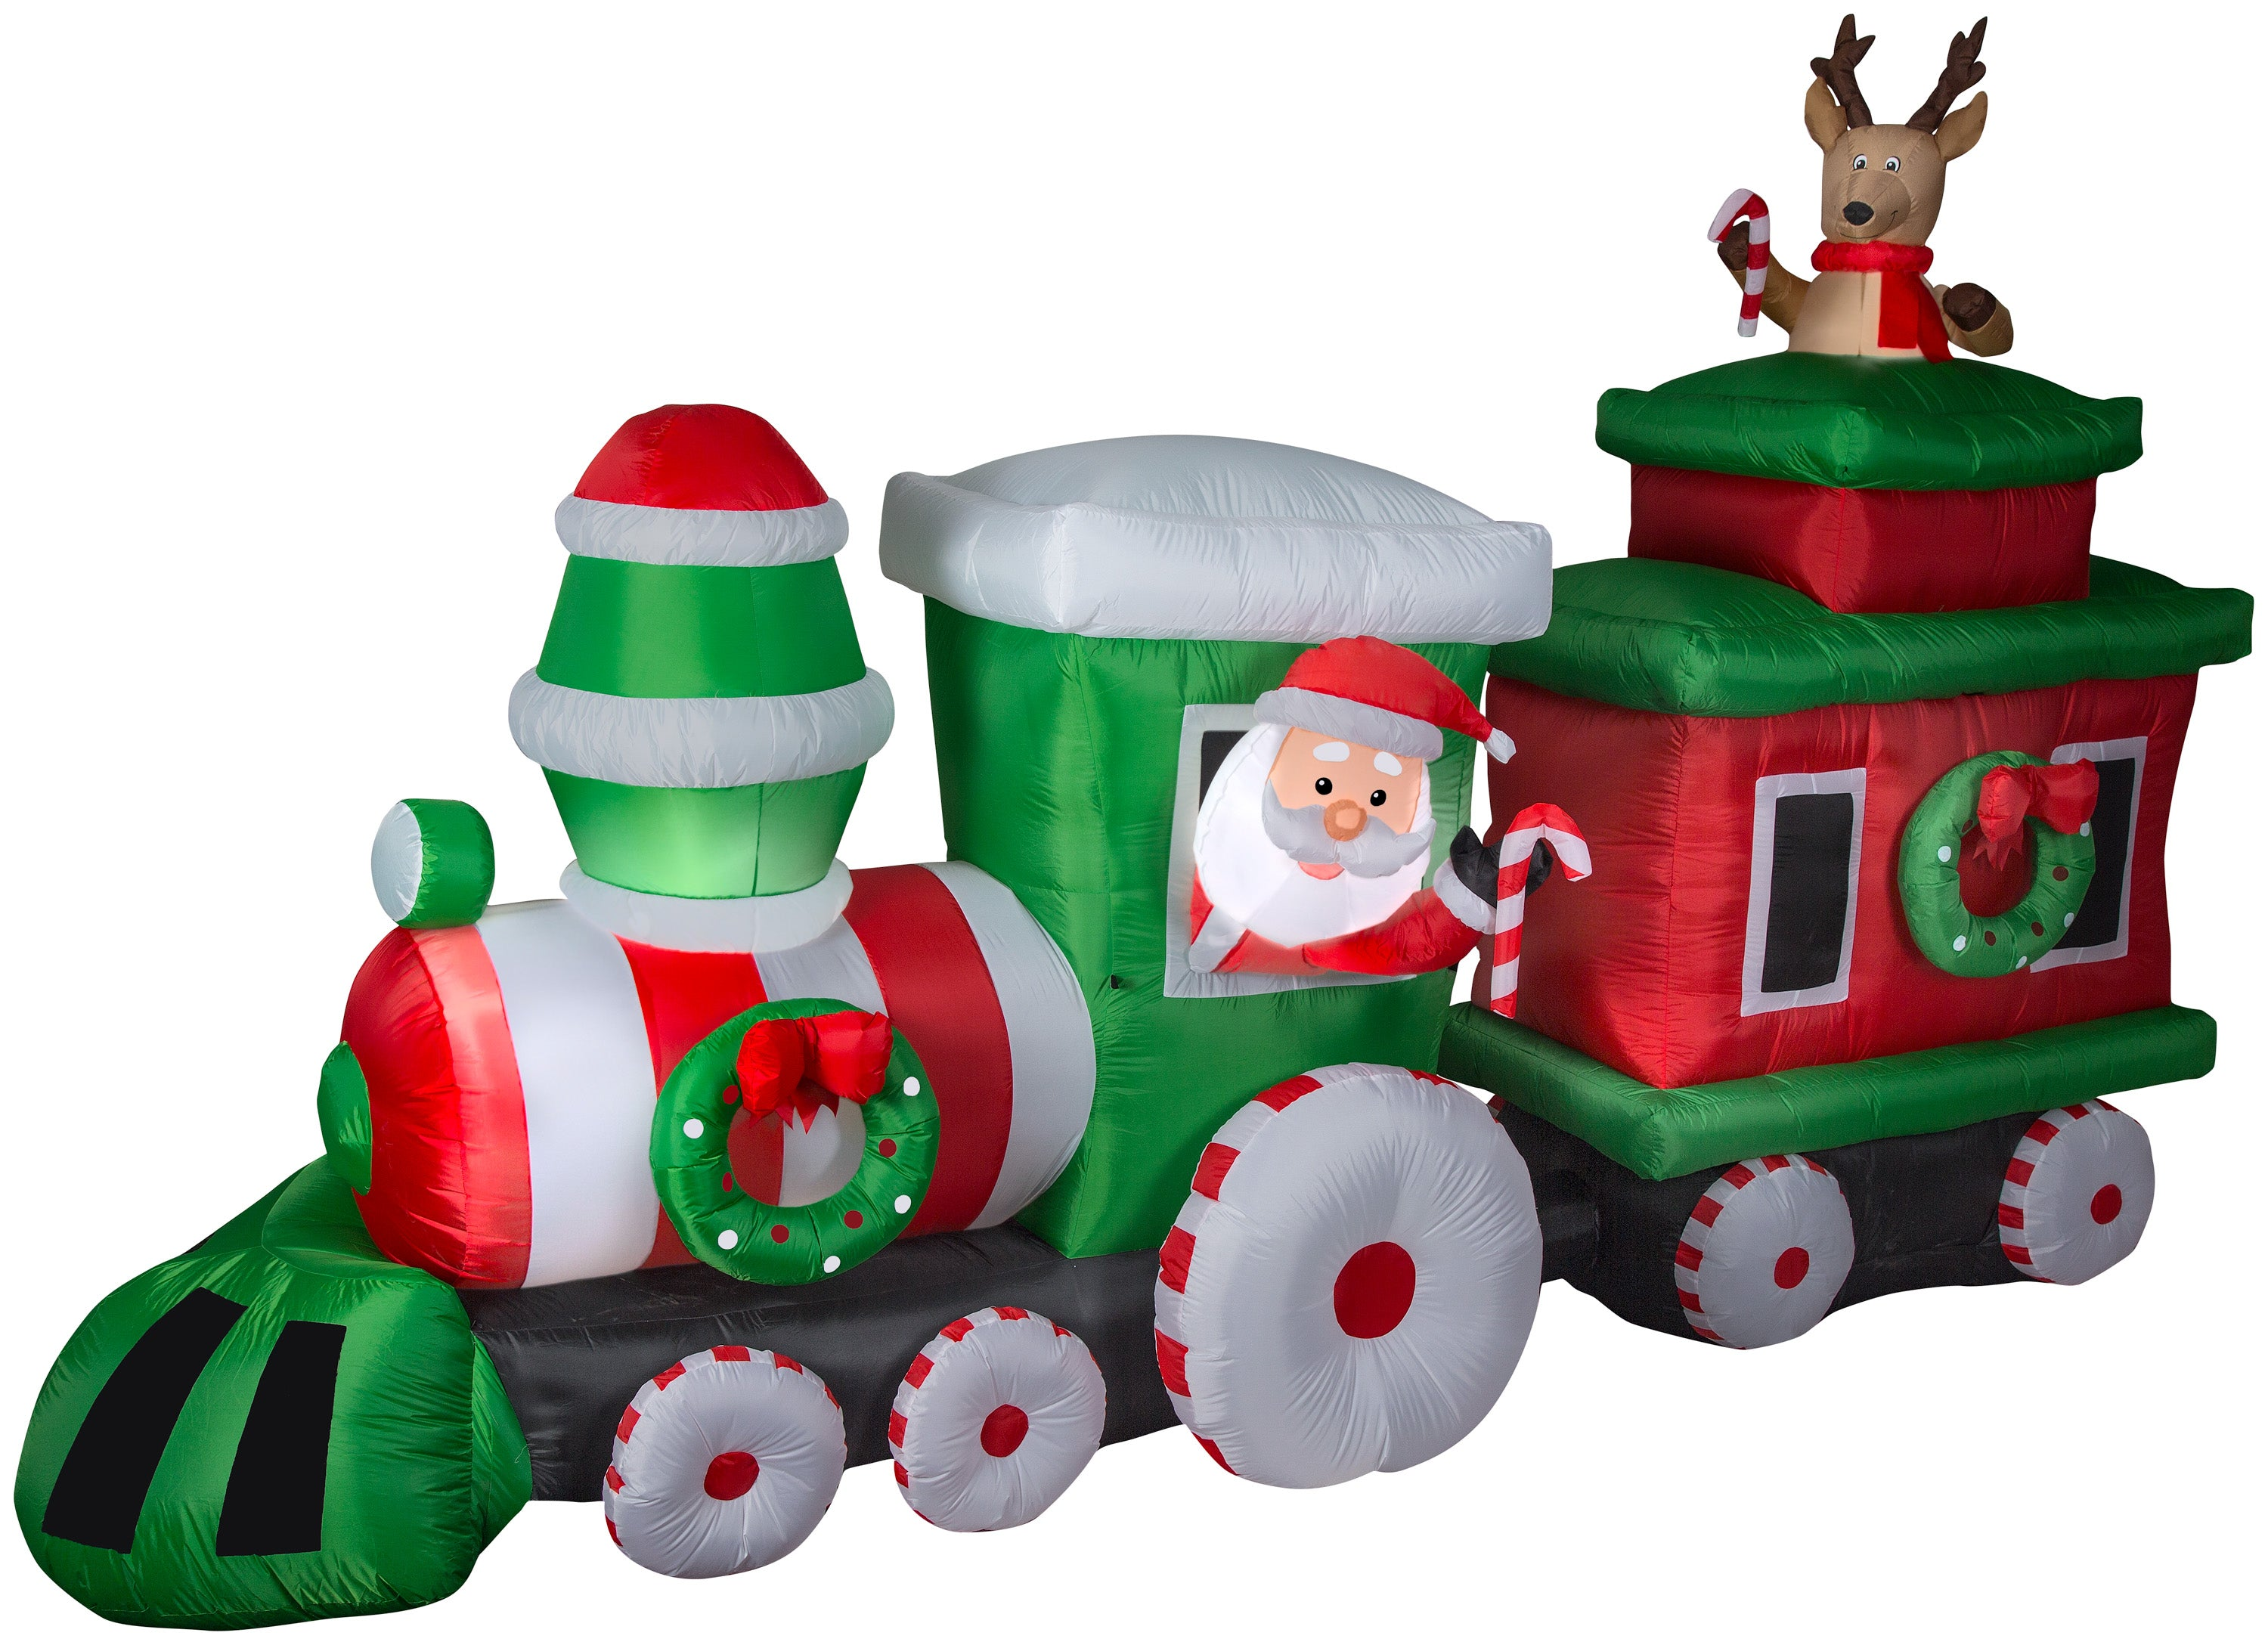 14' Wide Airblown Santa in Train w/Caboose Colossal Christmas Inflatable